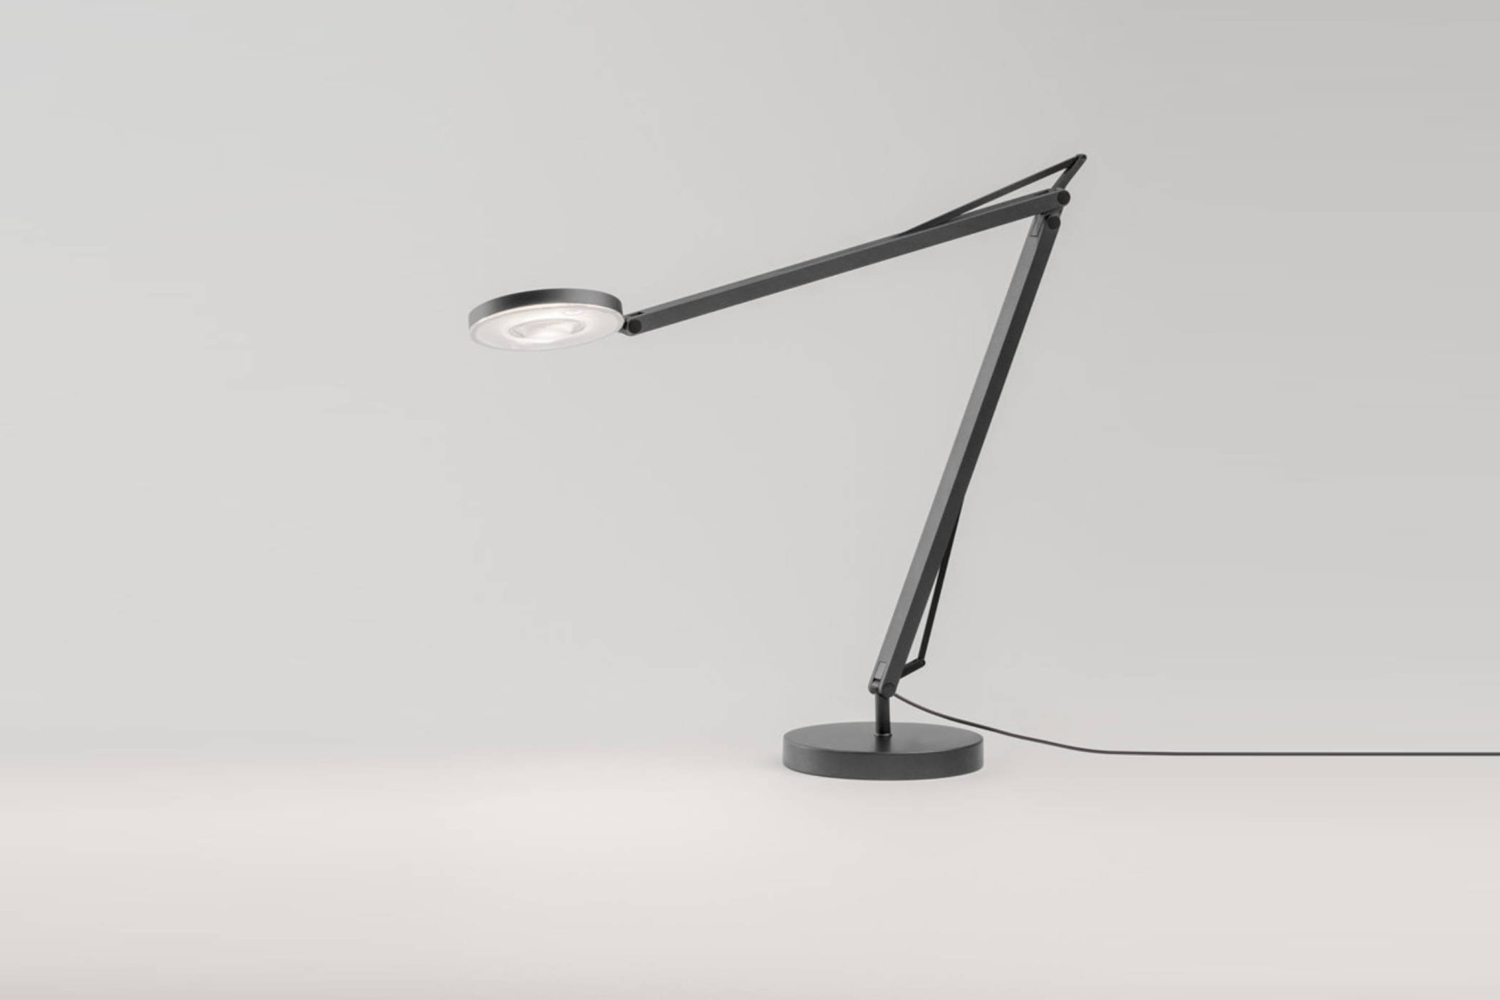 At Plug Lighting the John Desk Lamp is especially slender and designed with an LED light. Contact Plug Lighting for ordering information.